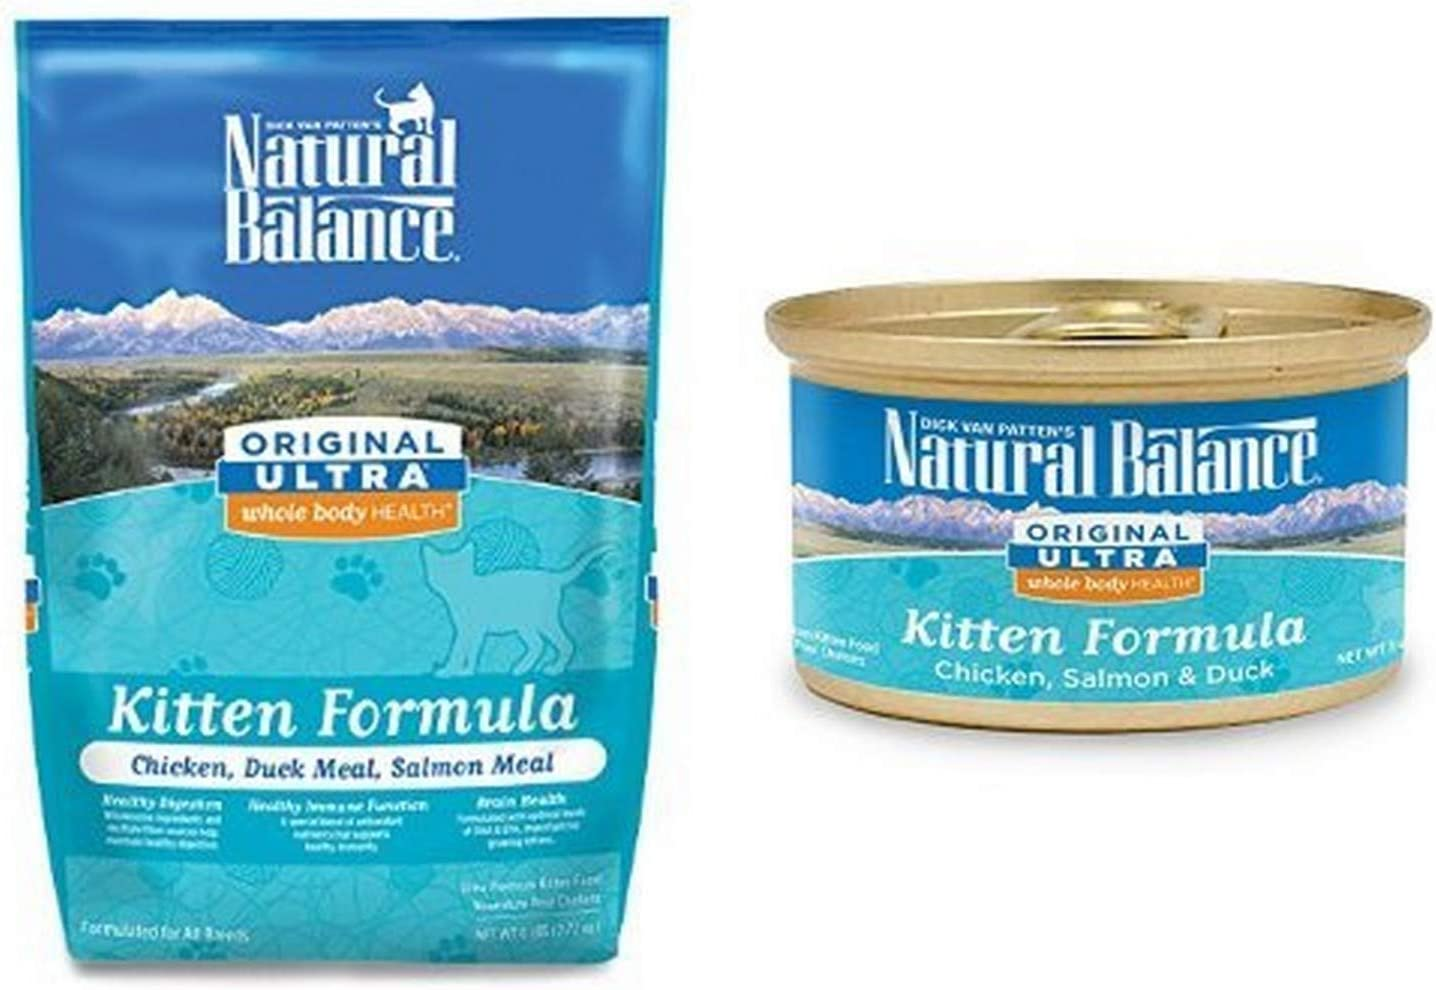 Natural Balance Kitten Formula, Original Ultra Whole Body Health Chicken, Duck Meal & Salmon Meal, Bundle: 6-Pound Bag Dry Cat Food And 24/3-Ounce Cans Wet Cat Food